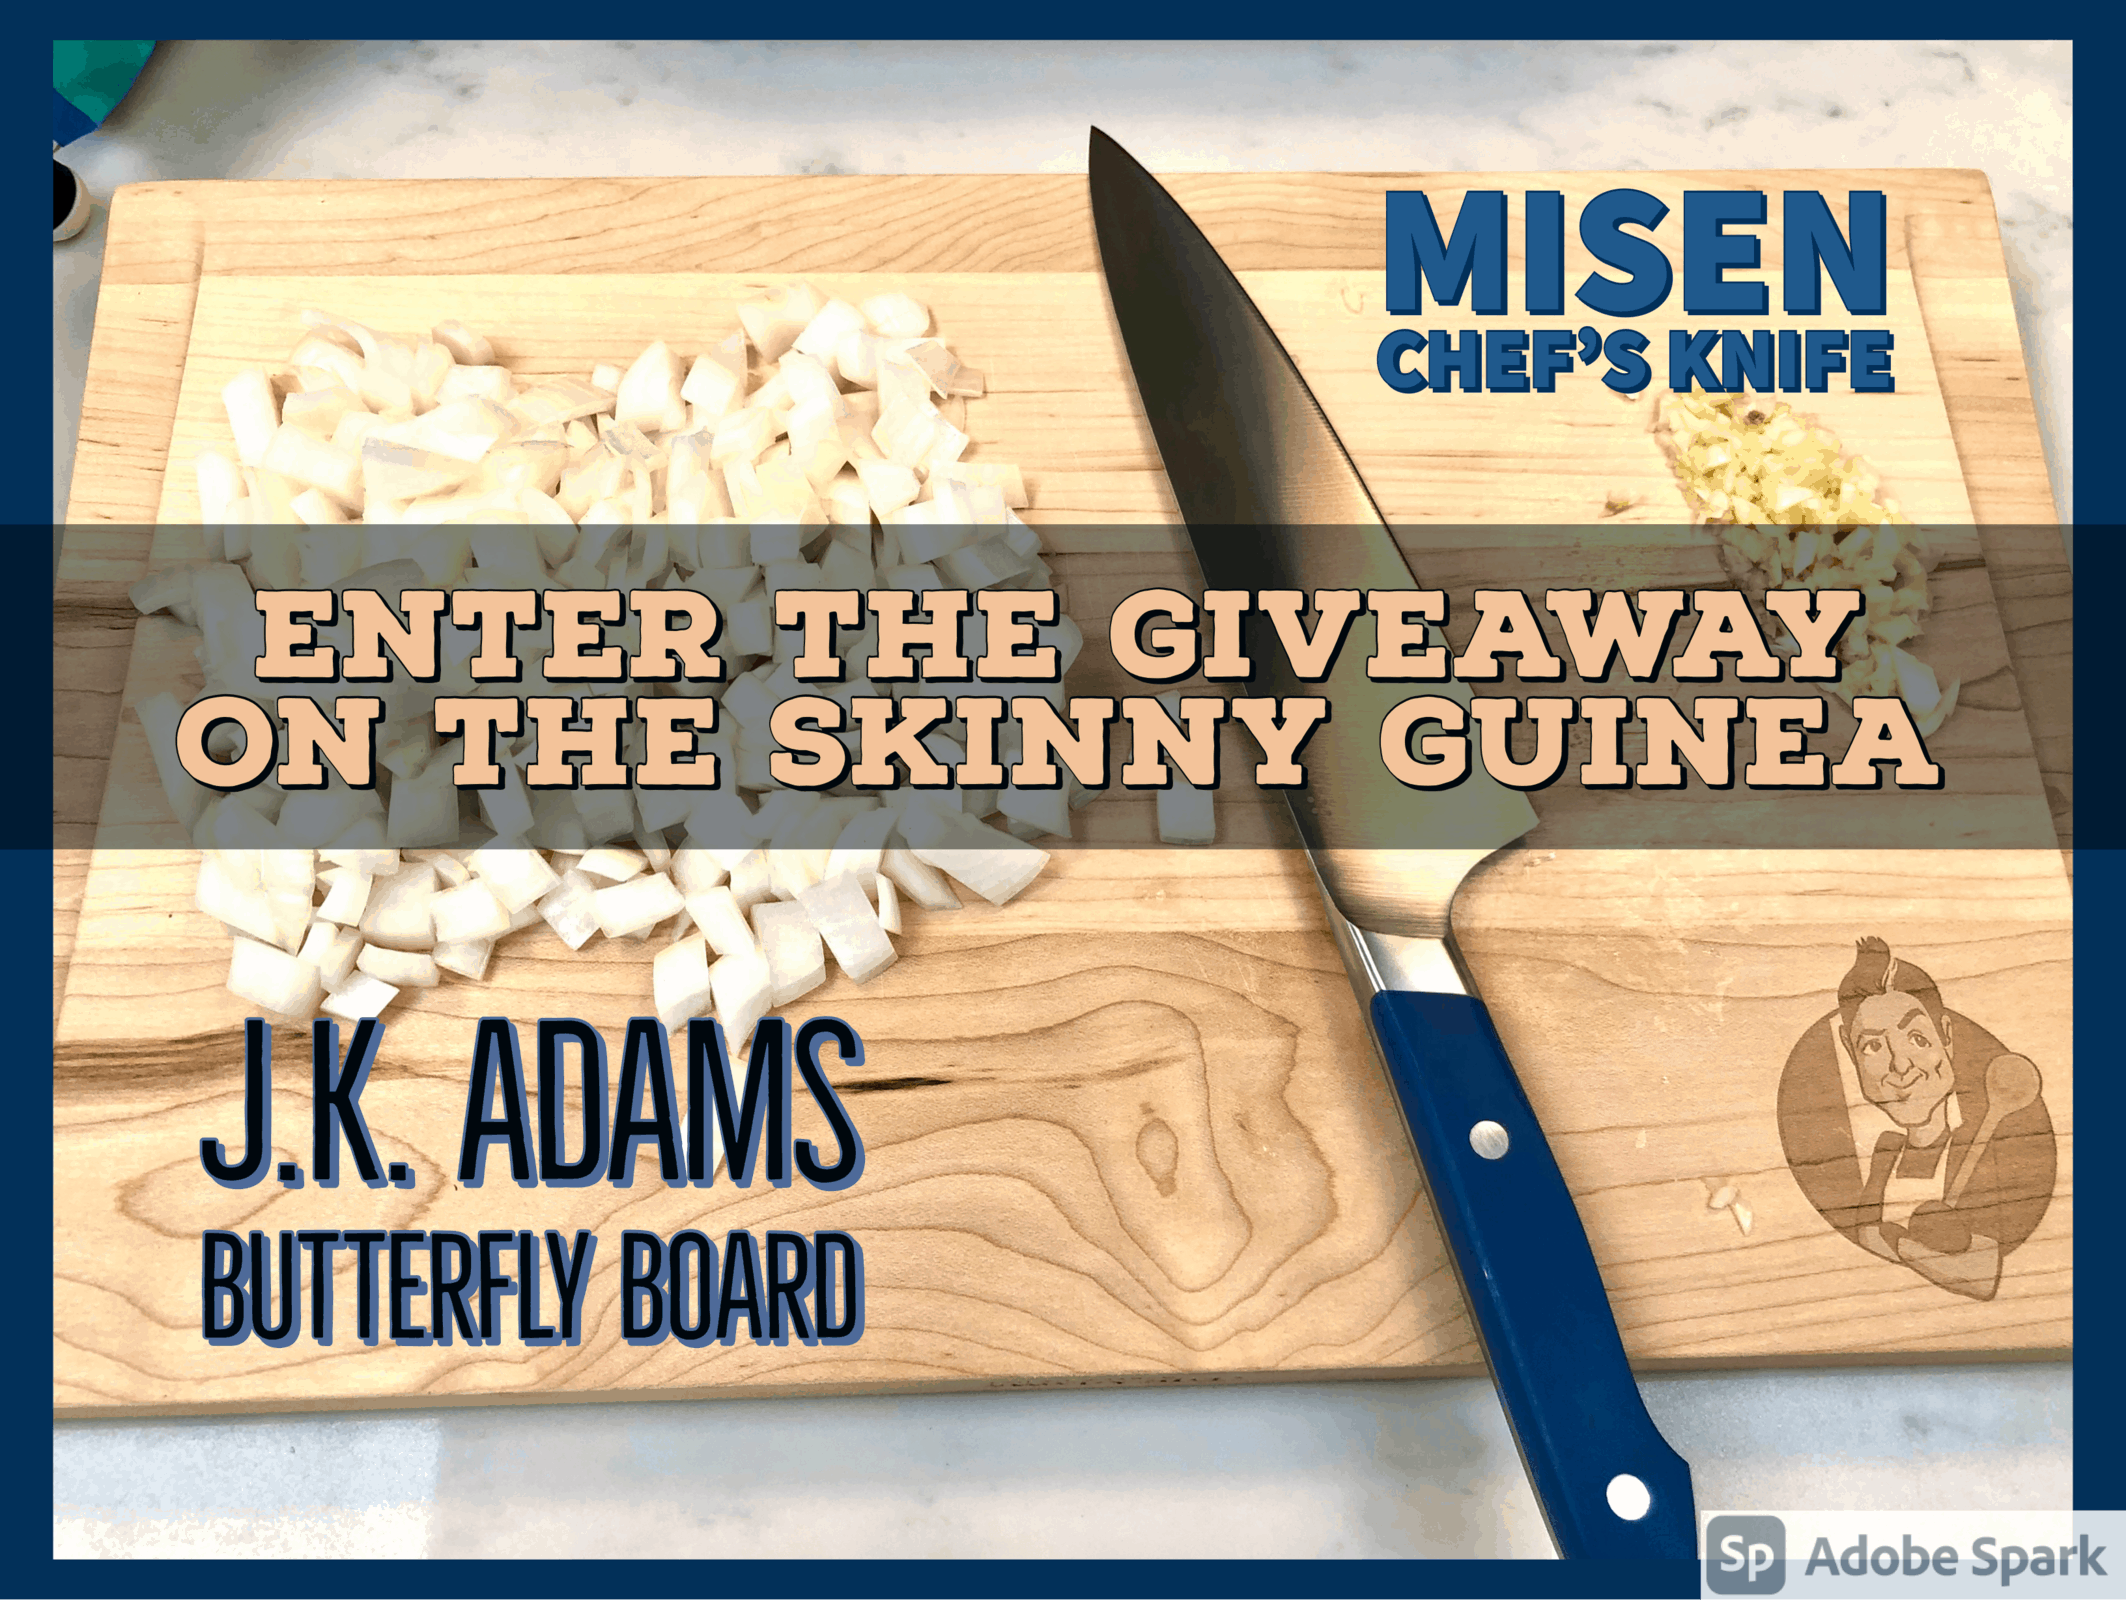 J.K. Adams Cutting Board and Misen Chef's Knife Giveaway